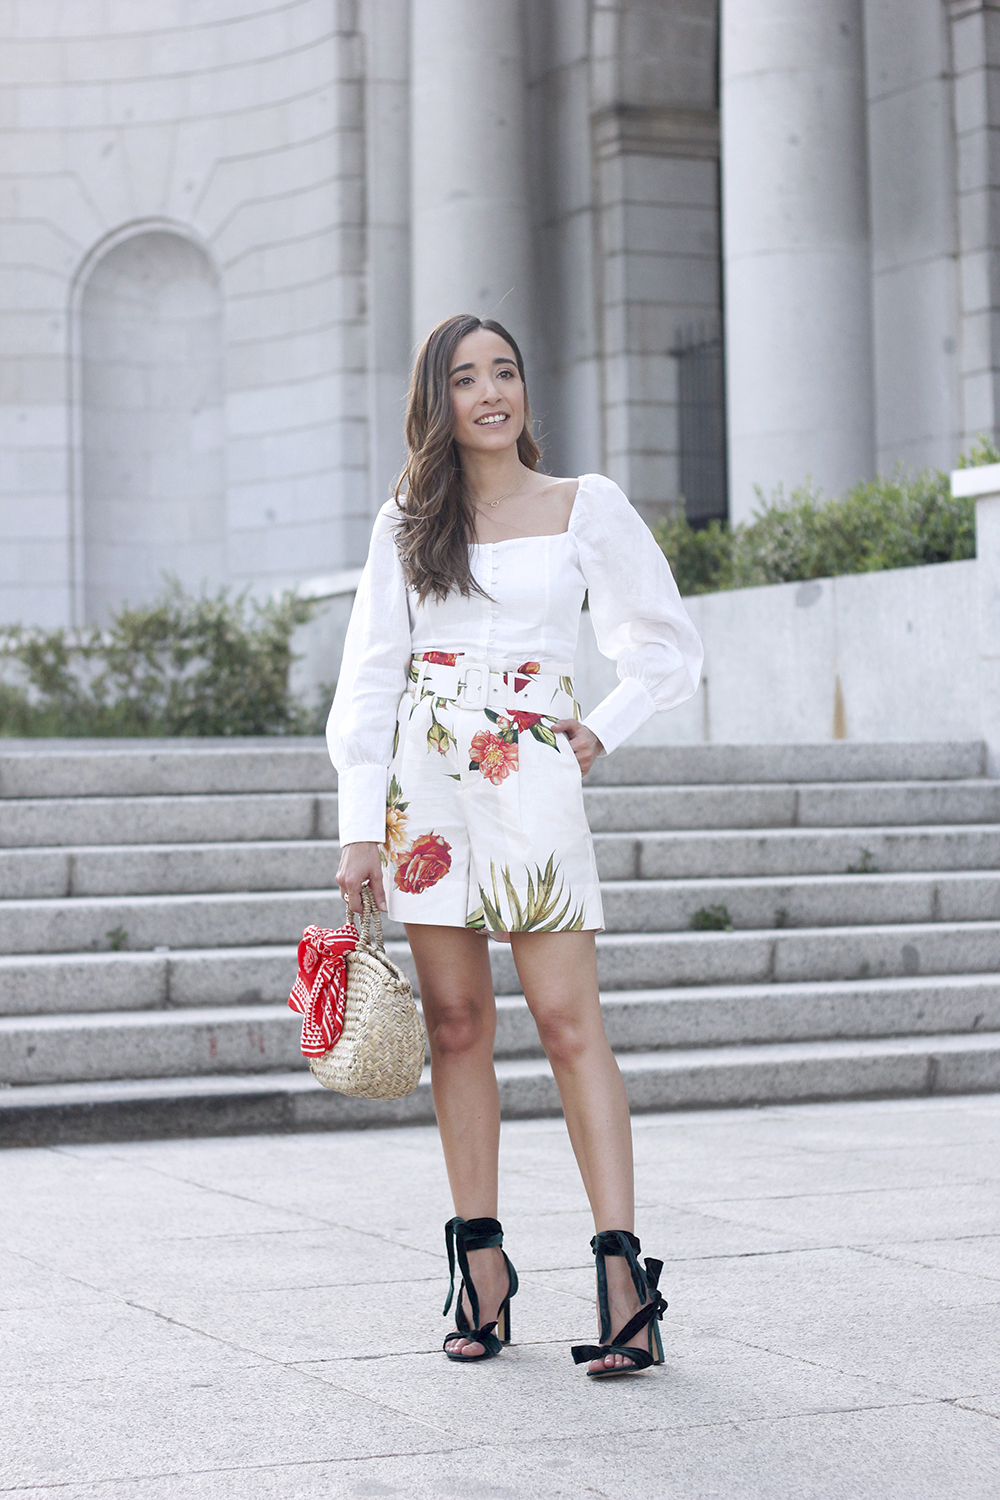 floral print shorts linnen top suede heels street style summer outfit 20194